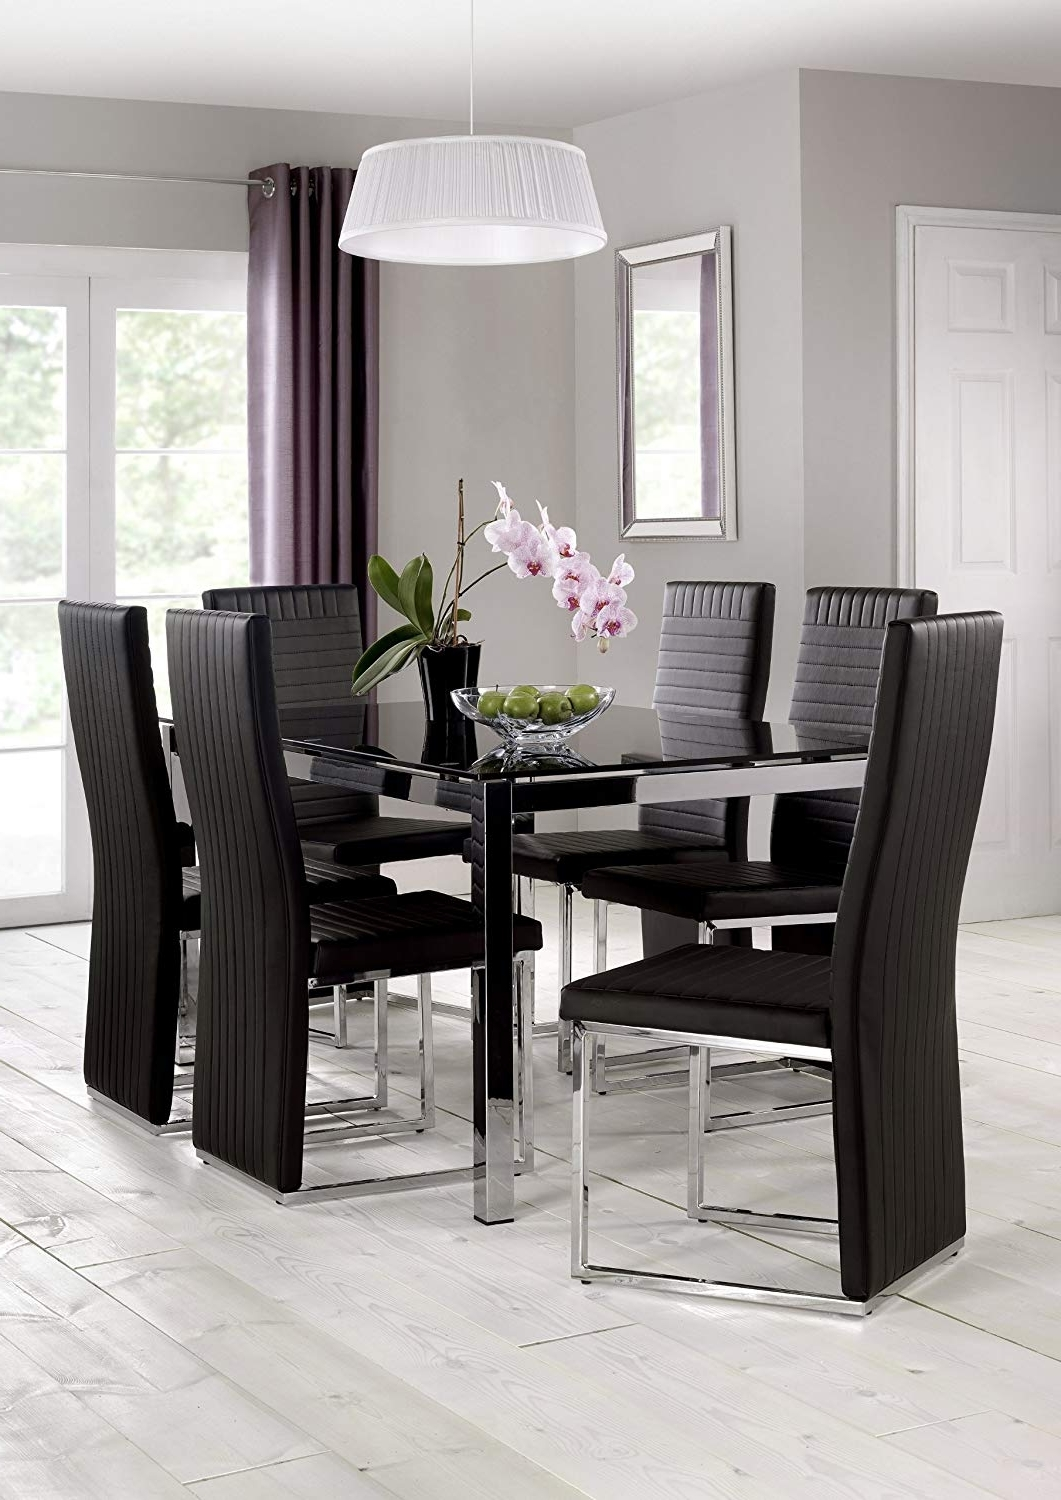 Dining Tables With 6 Chairs Pertaining To Most Up To Date Julian Bowen Tempo Glass Dining Table, Chrome/black: Amazon.co (View 8 of 25)